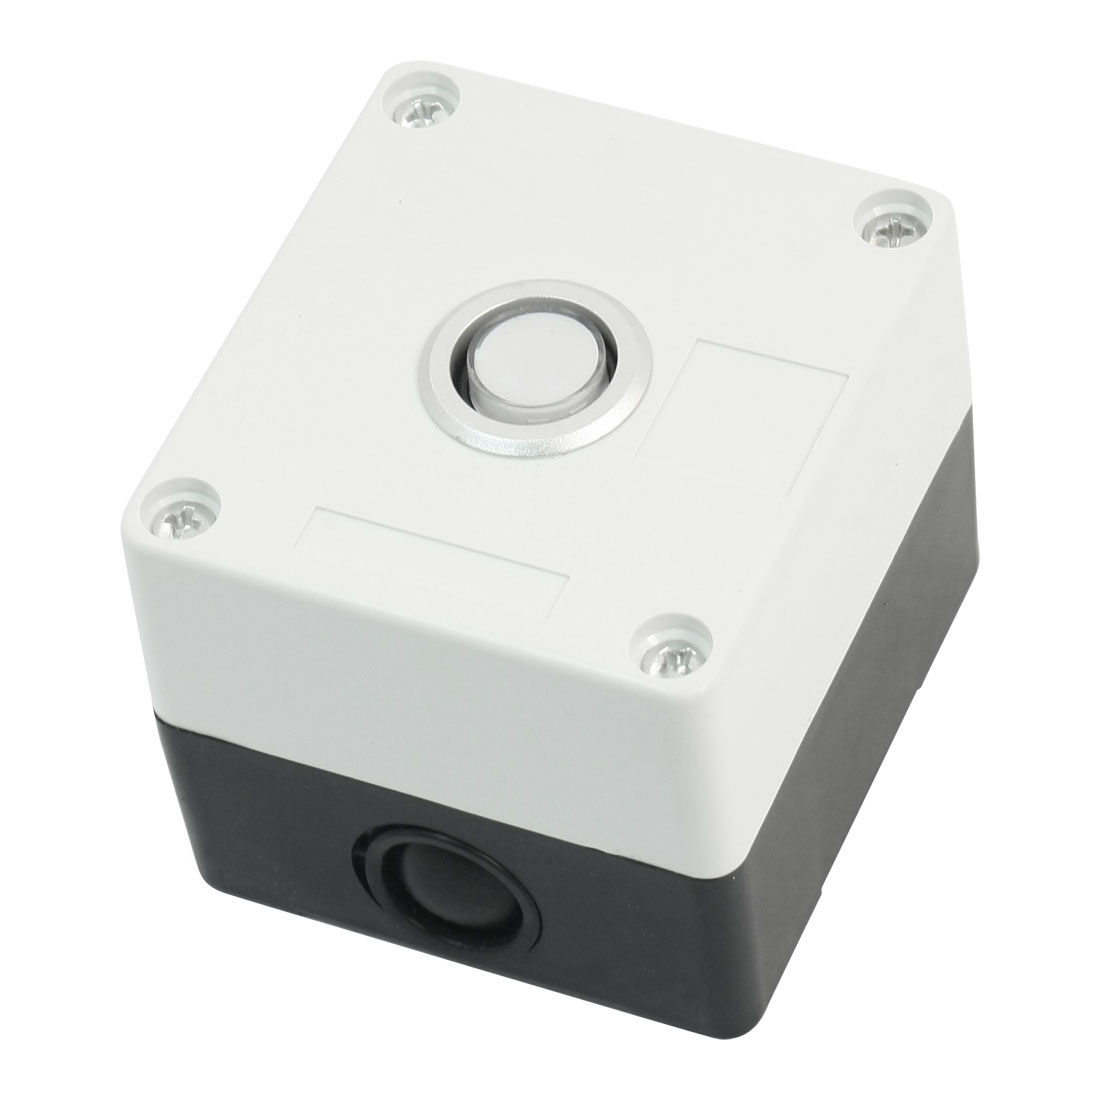 AC 220V 5A Warm White Pilot Lamp SPDT 1NO 1NC 5-Pin Self-Locking Rectangle Plastic Push Button Control Station Box